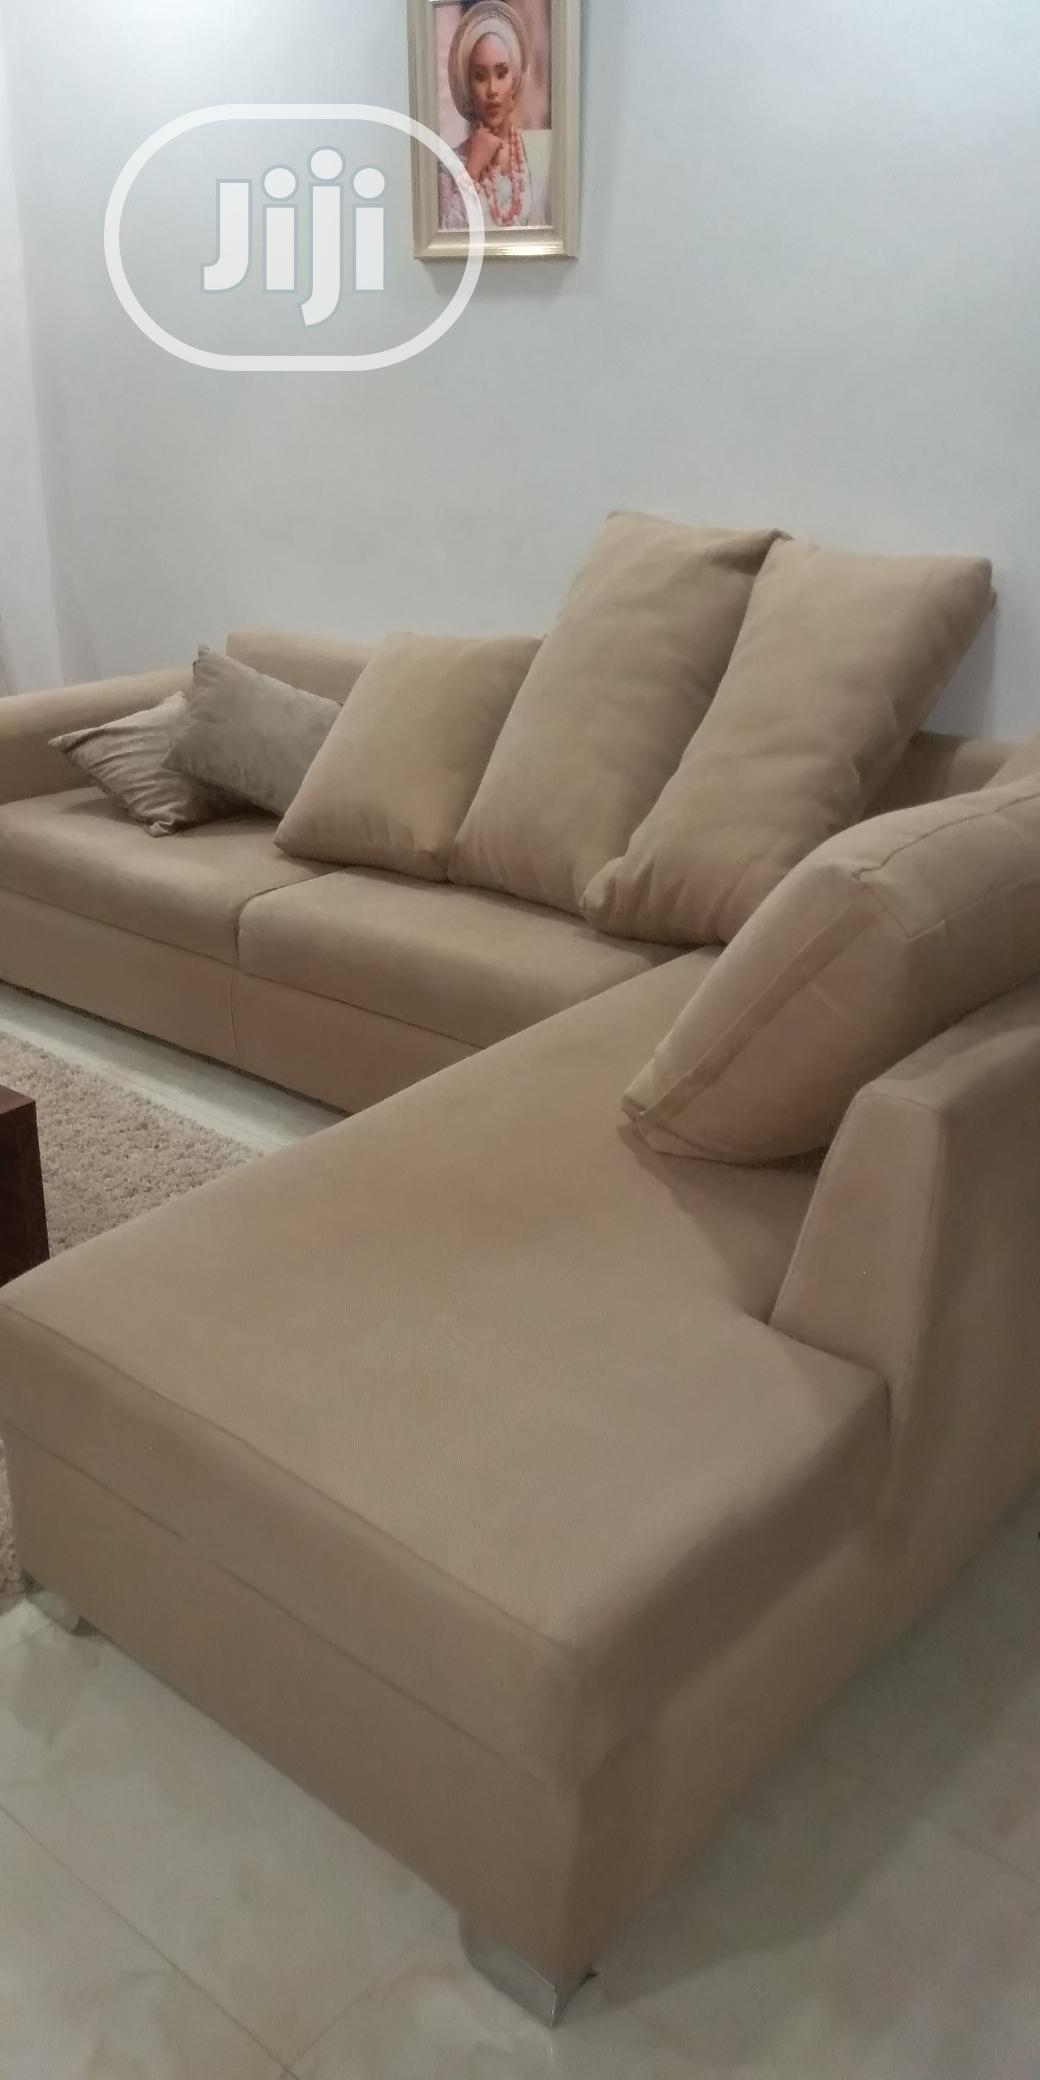 Easy Touch Uphustery Cleaning | Cleaning Services for sale in Surulere, Lagos State, Nigeria